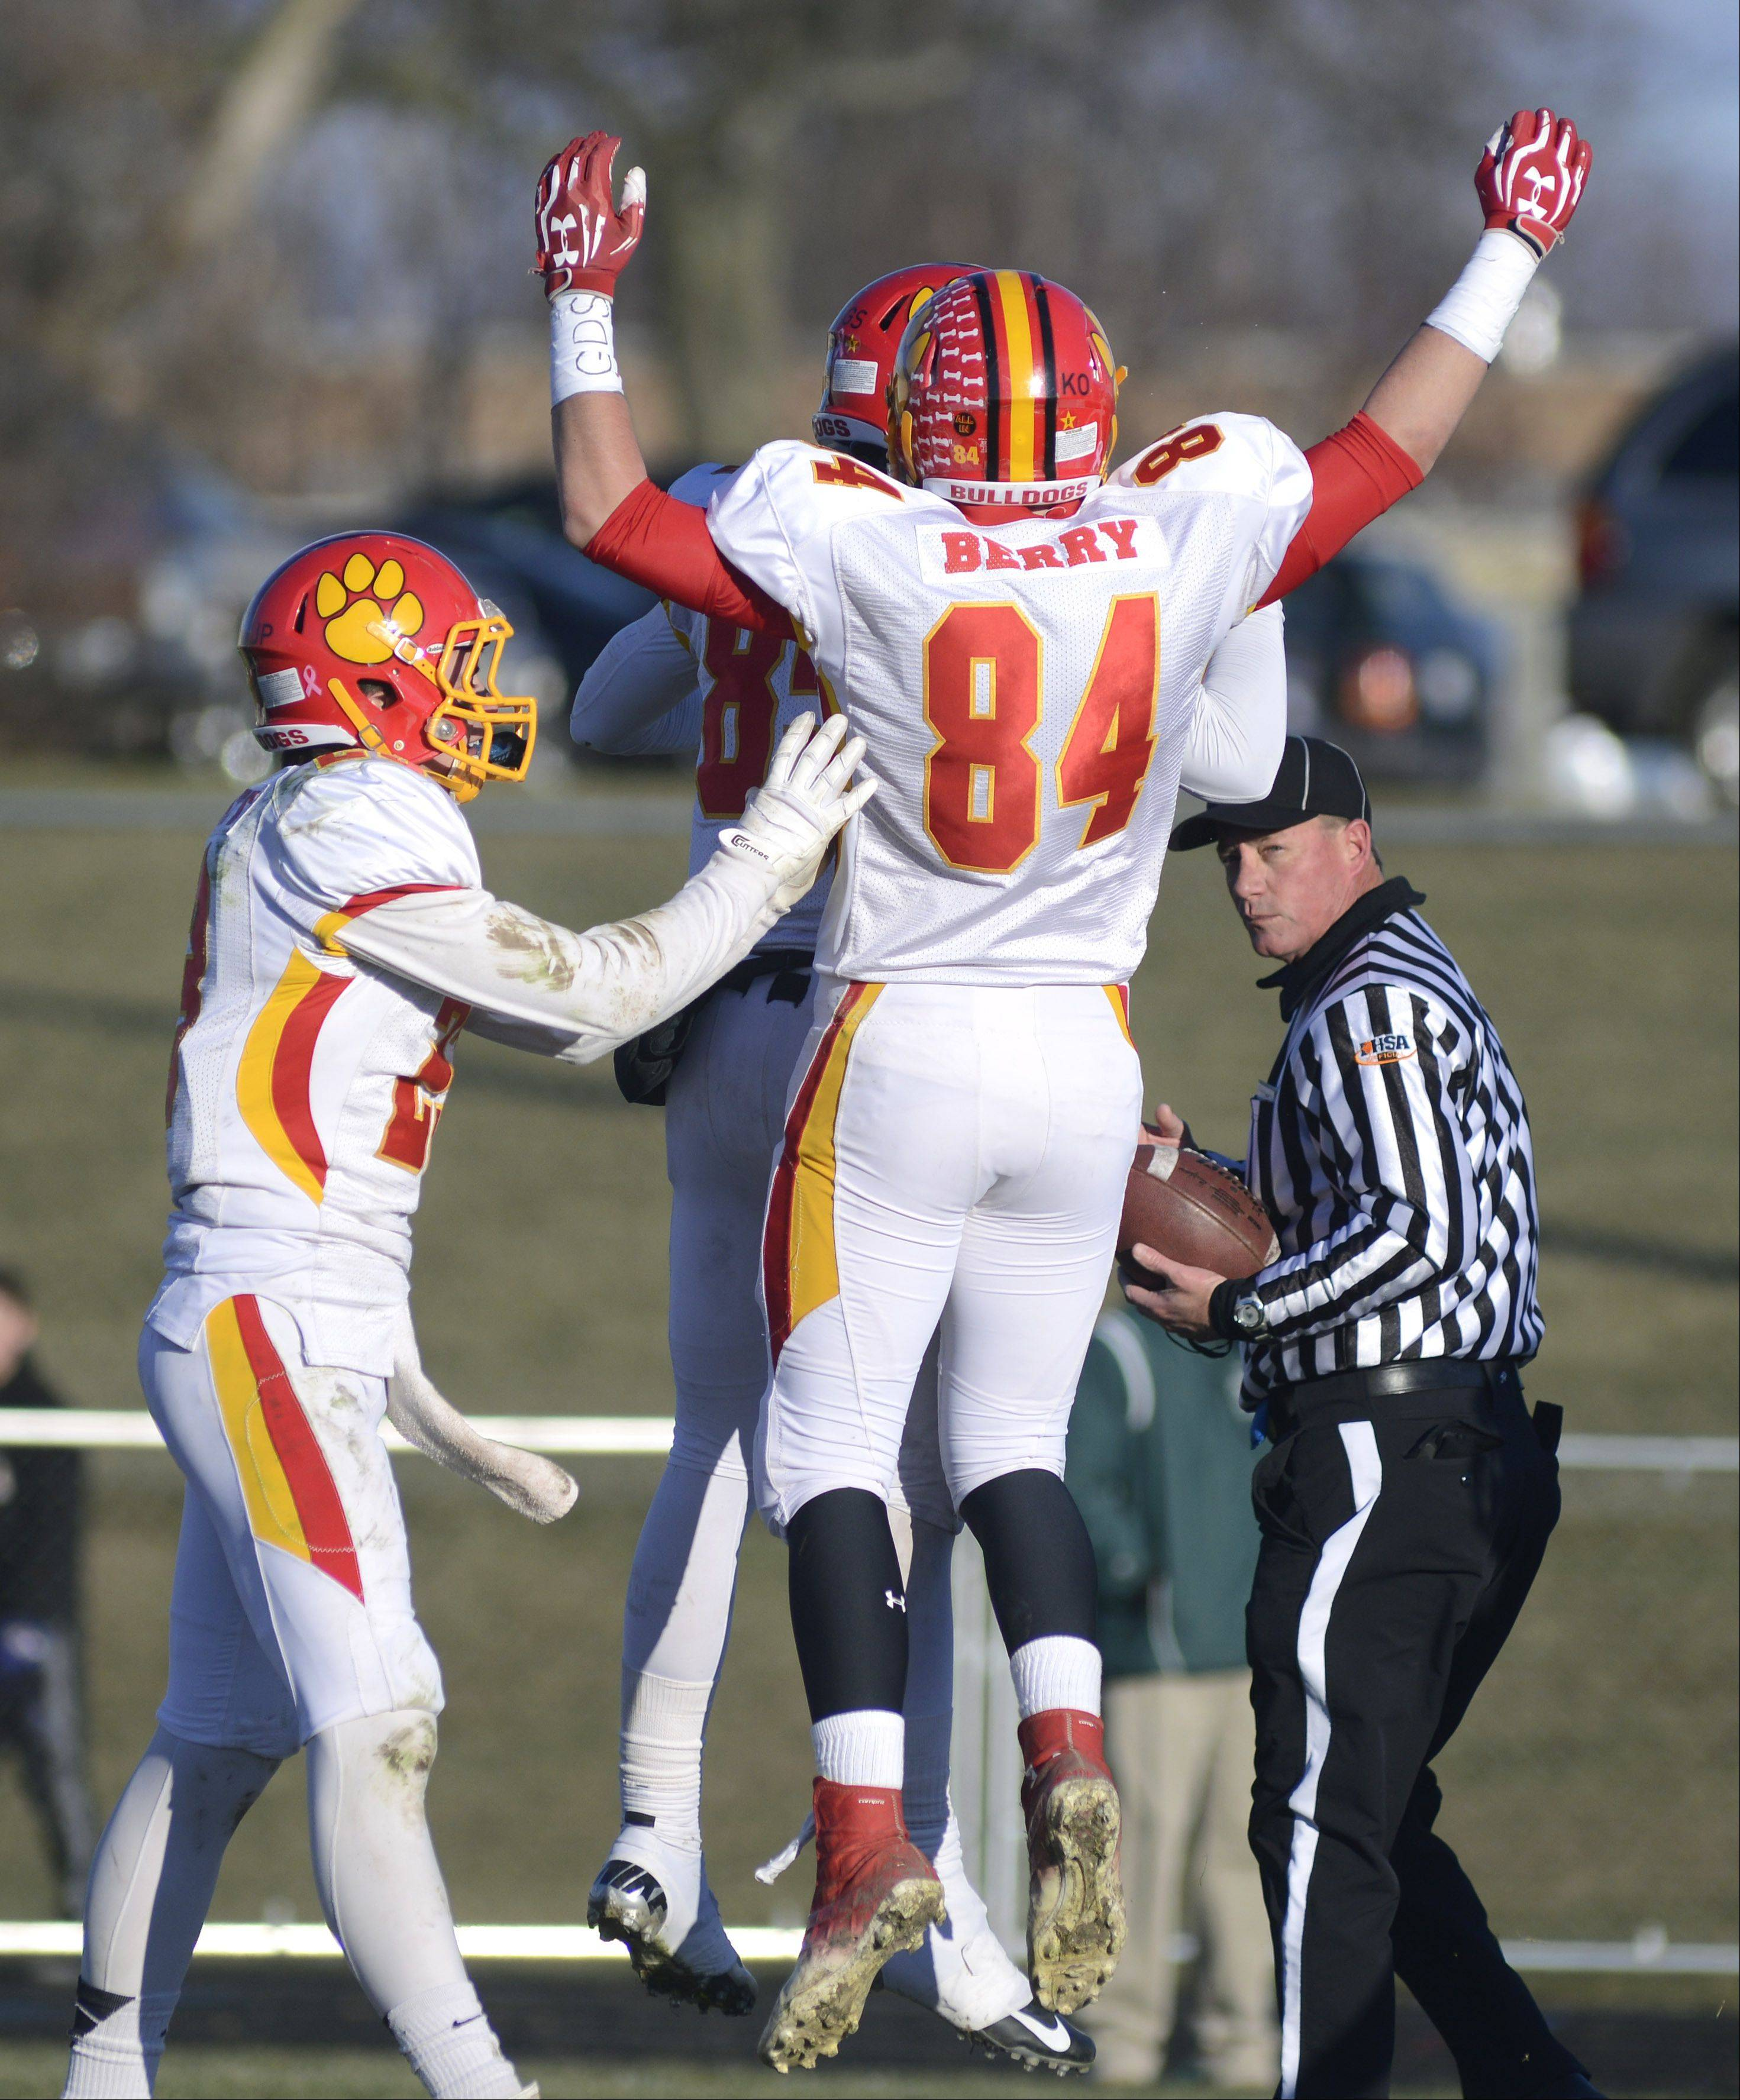 Batavia's Michael Moffatt, left, congratulates Jordan Zwart (hidden) as he bumps with Alec Berry after scoring a touchdown in the fourth quarter of the Class 6A semifinal game on Saturday, November 23.